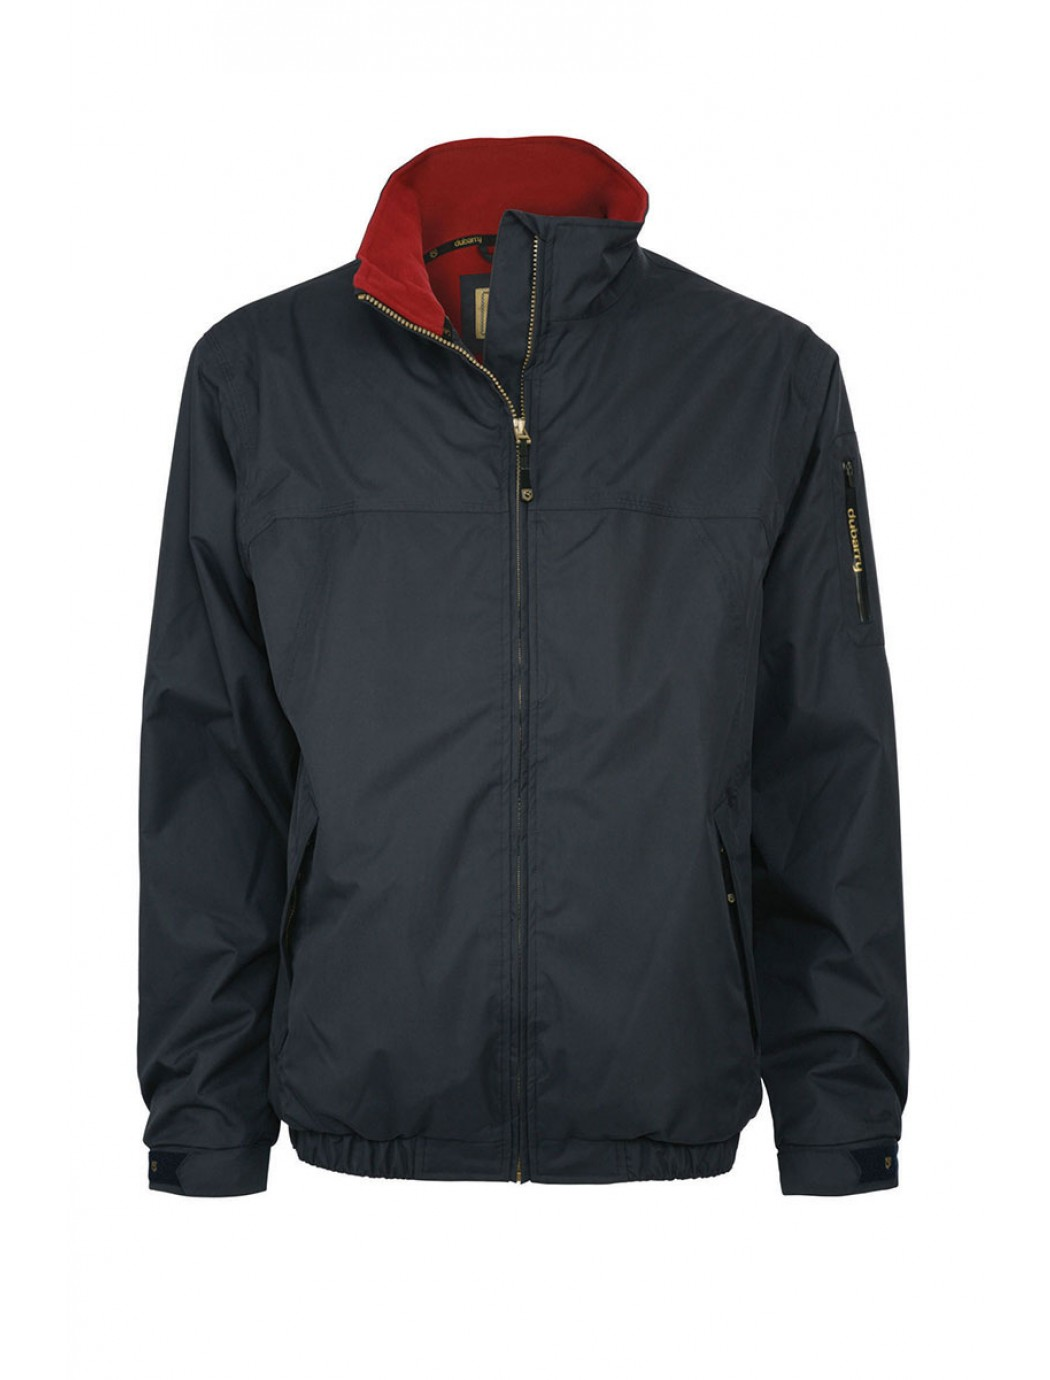 storm-mens-jackets-navy-flag-red